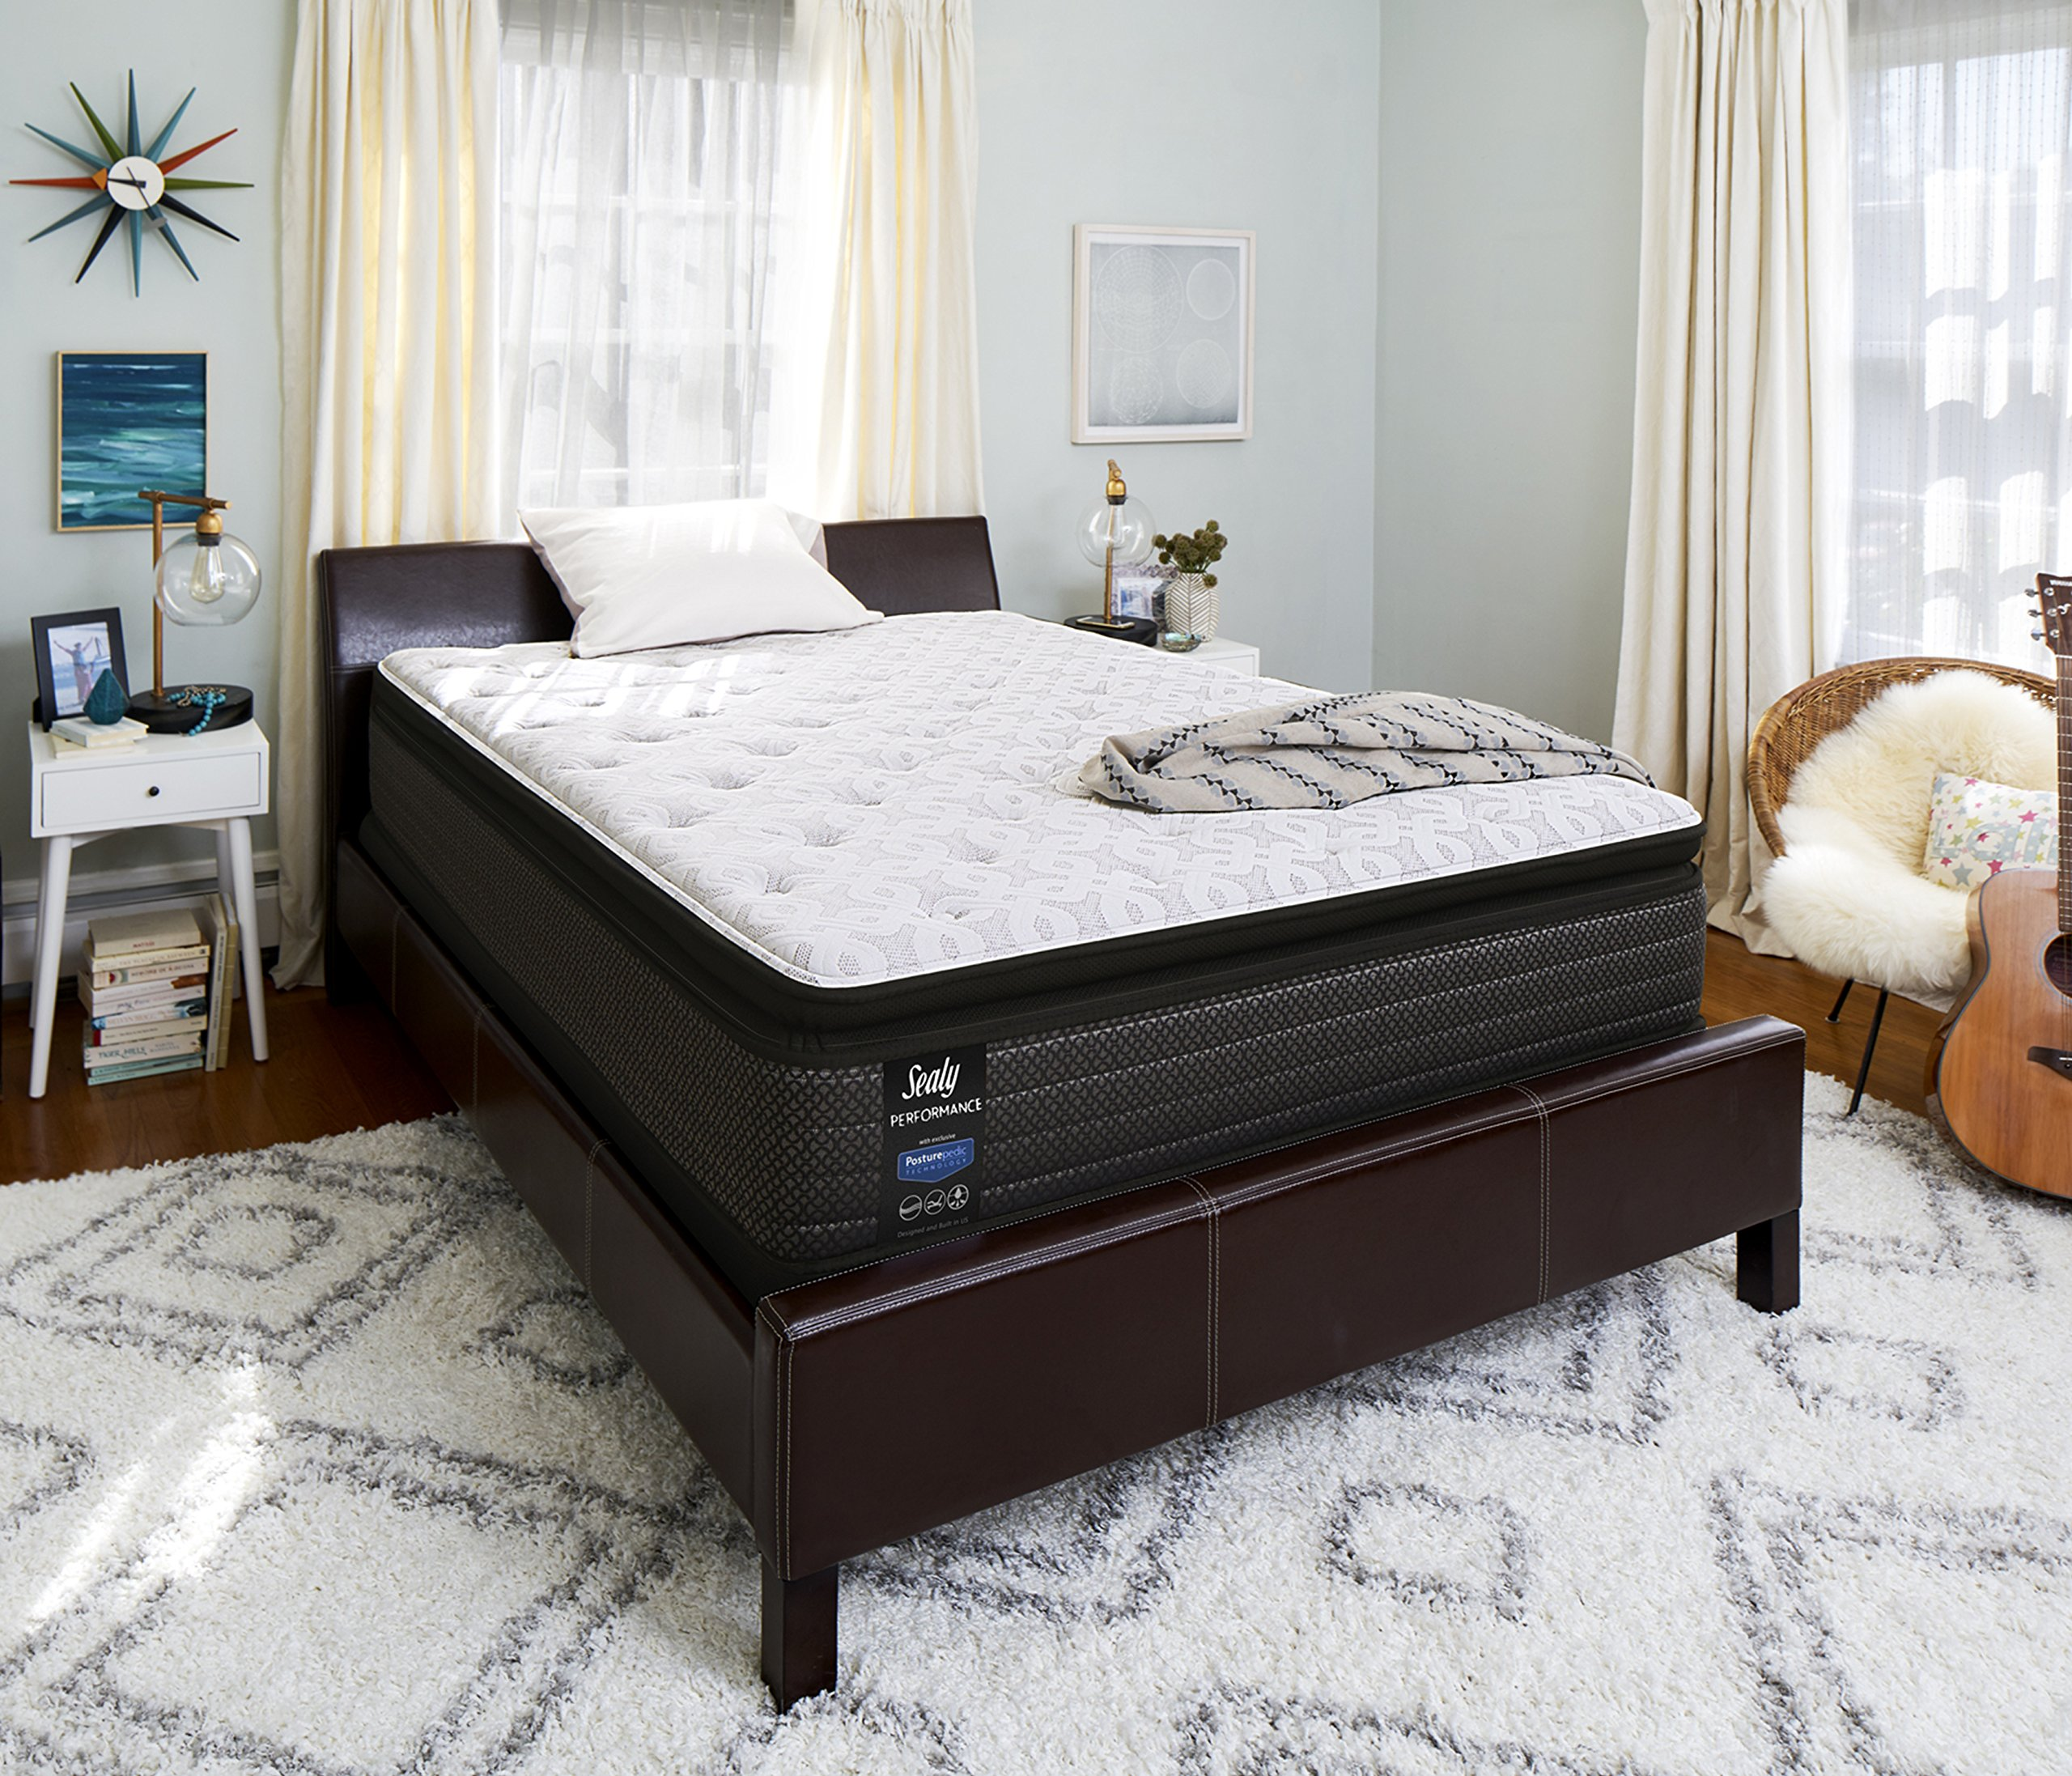 Sealy Response Performance 14-Inch Cushion Firm Euro Pillow Top Mattress, Queen, Made in USA,  10 Year Warranty by Sealy